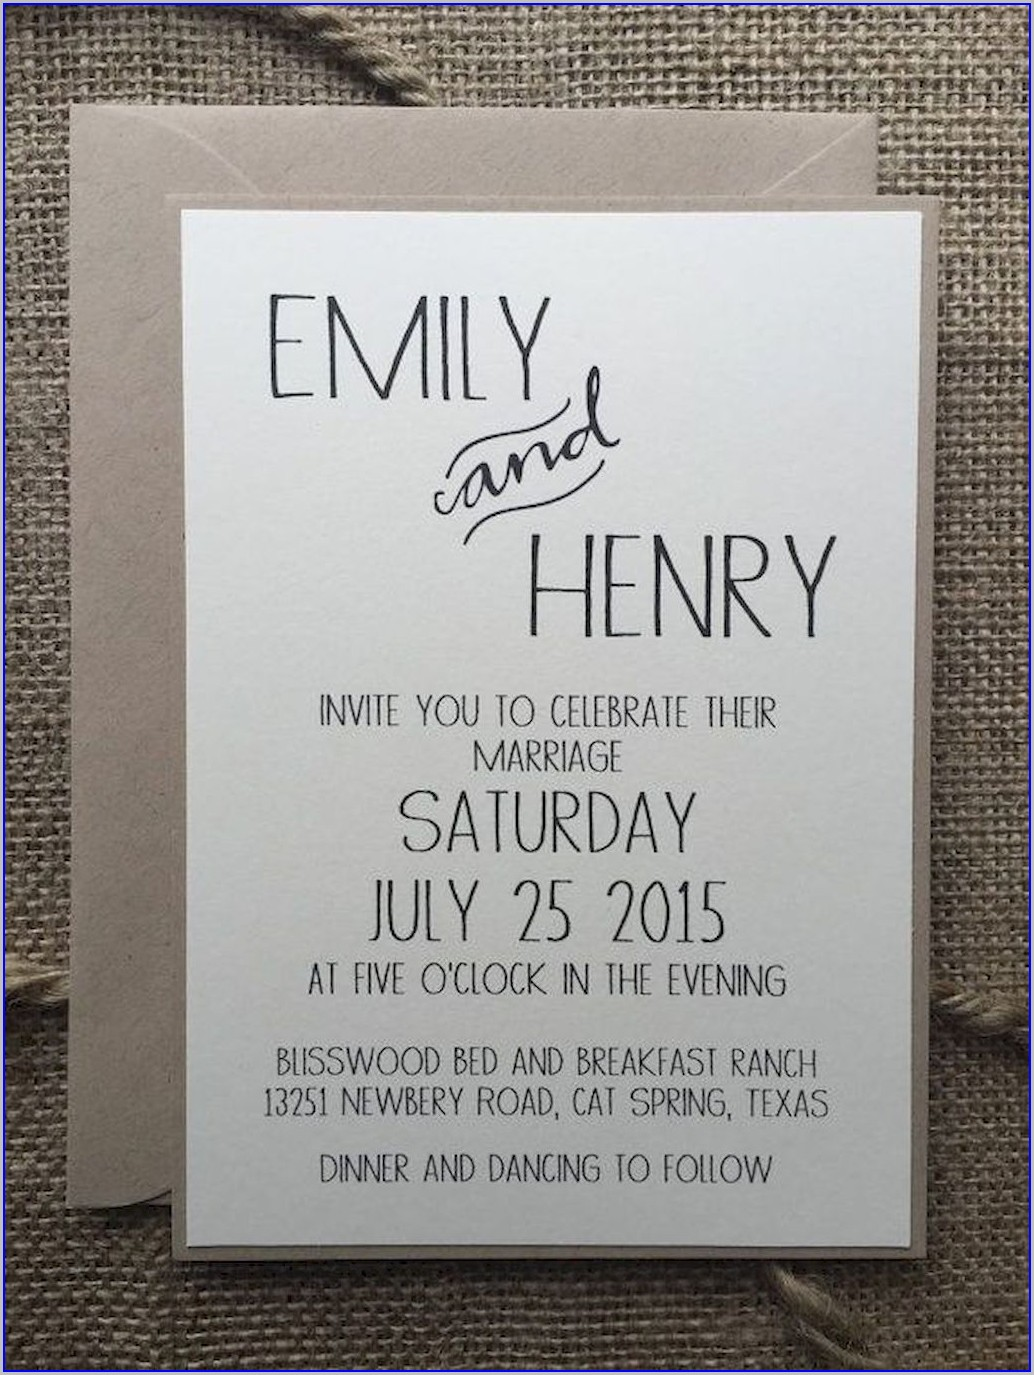 Elegant Simple Wedding Invitations Ideas